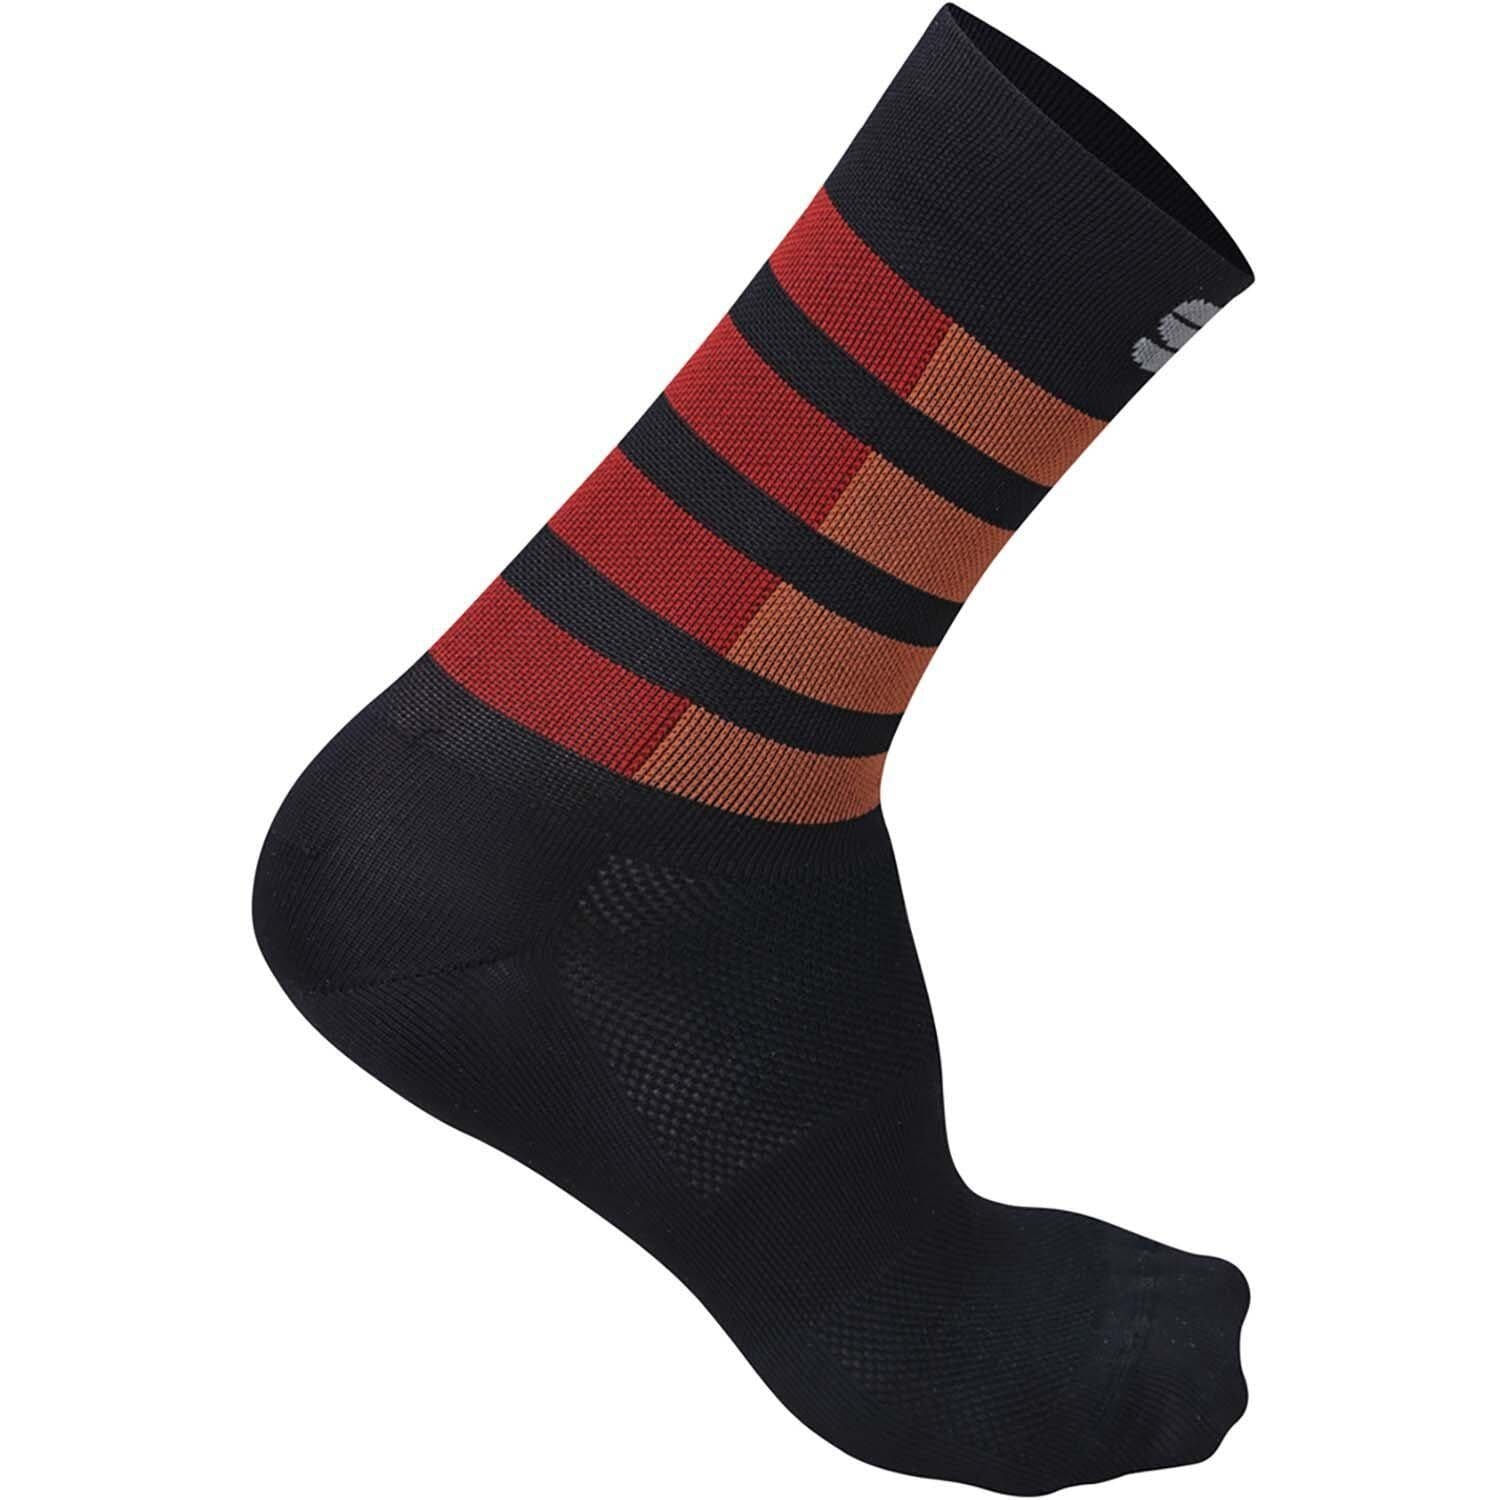 Sportful-Sportful Mate Socks-Black/Fire Red/Orange SDR-S-SF2009300412-saddleback-elite-performance-cycling